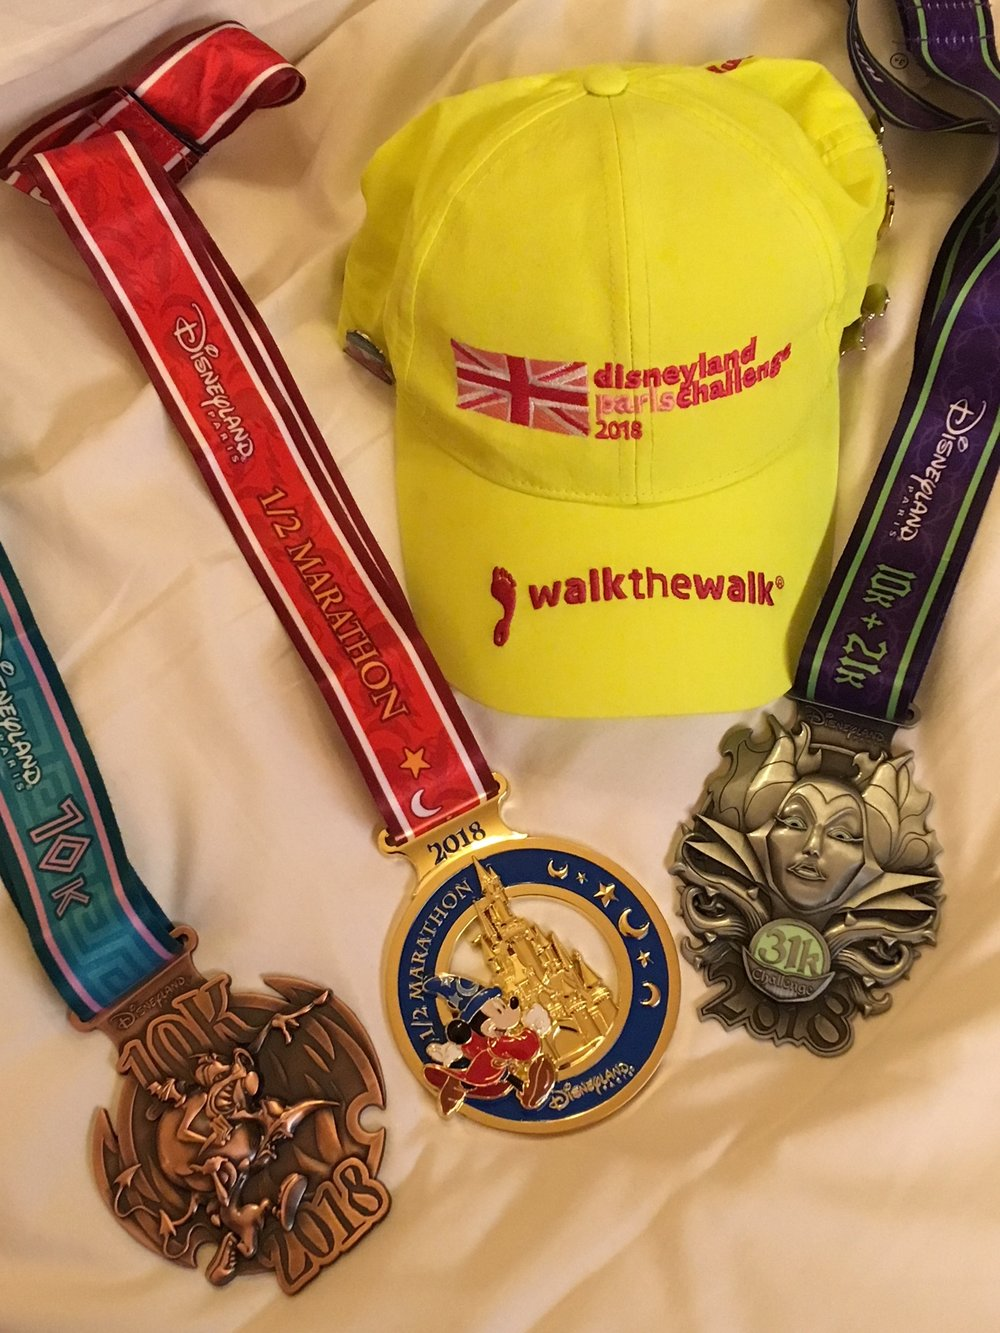 Photo 22 - my 3 medals and WTW cap.JPG